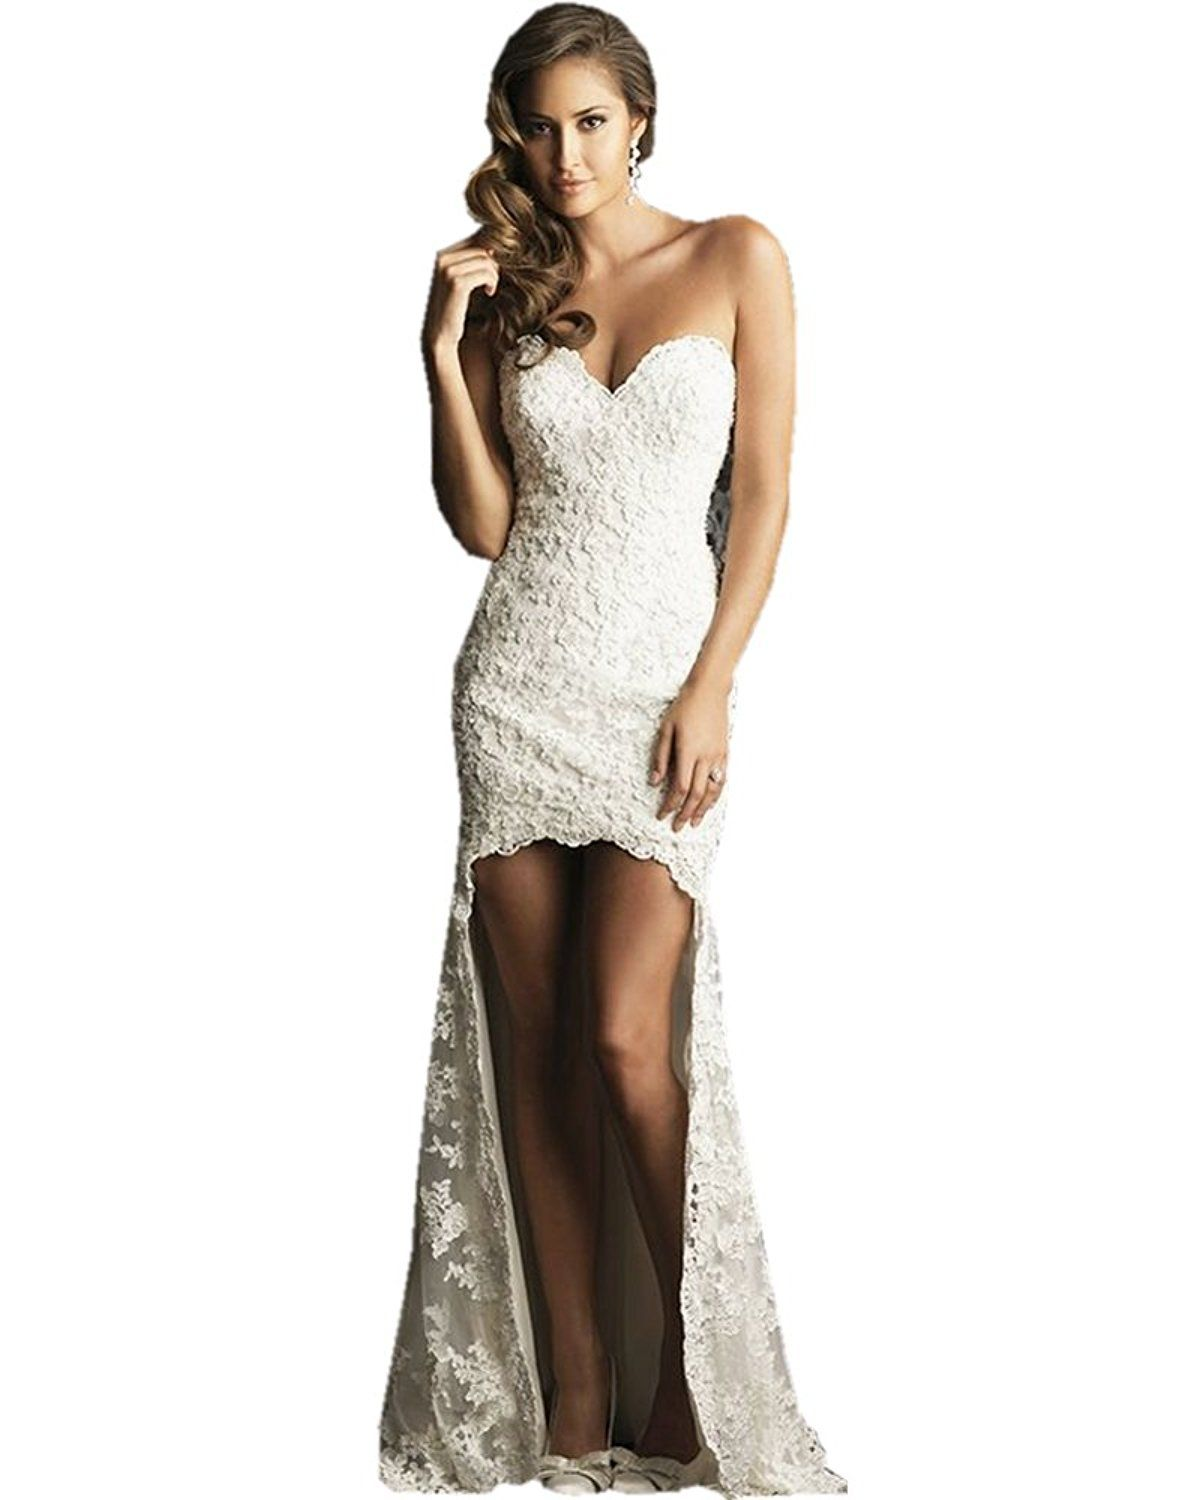 High low wedding dresses cheap  Oliviaus  Full Lace High Low Wedding Dresses Cheap Mermaid